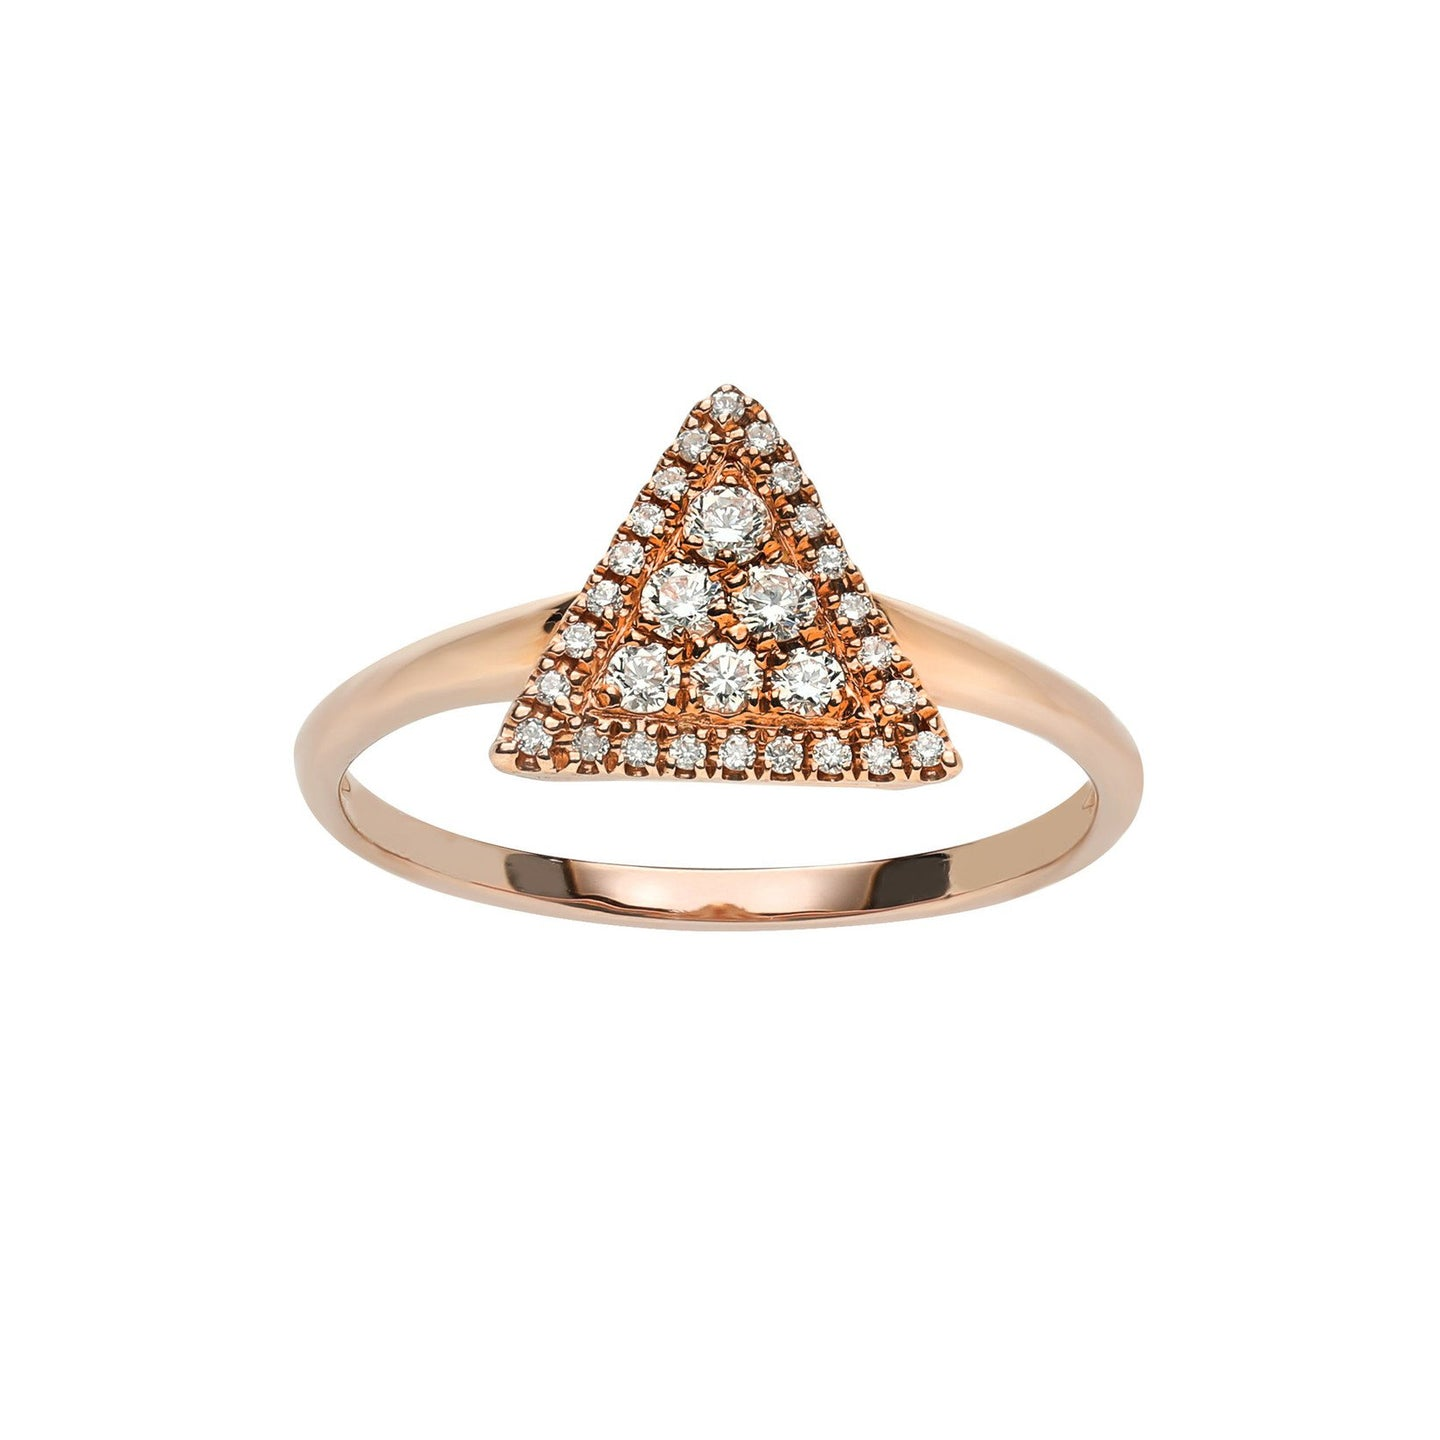 Marco Moore 14K Rose Gold Diamond Triangle Ring